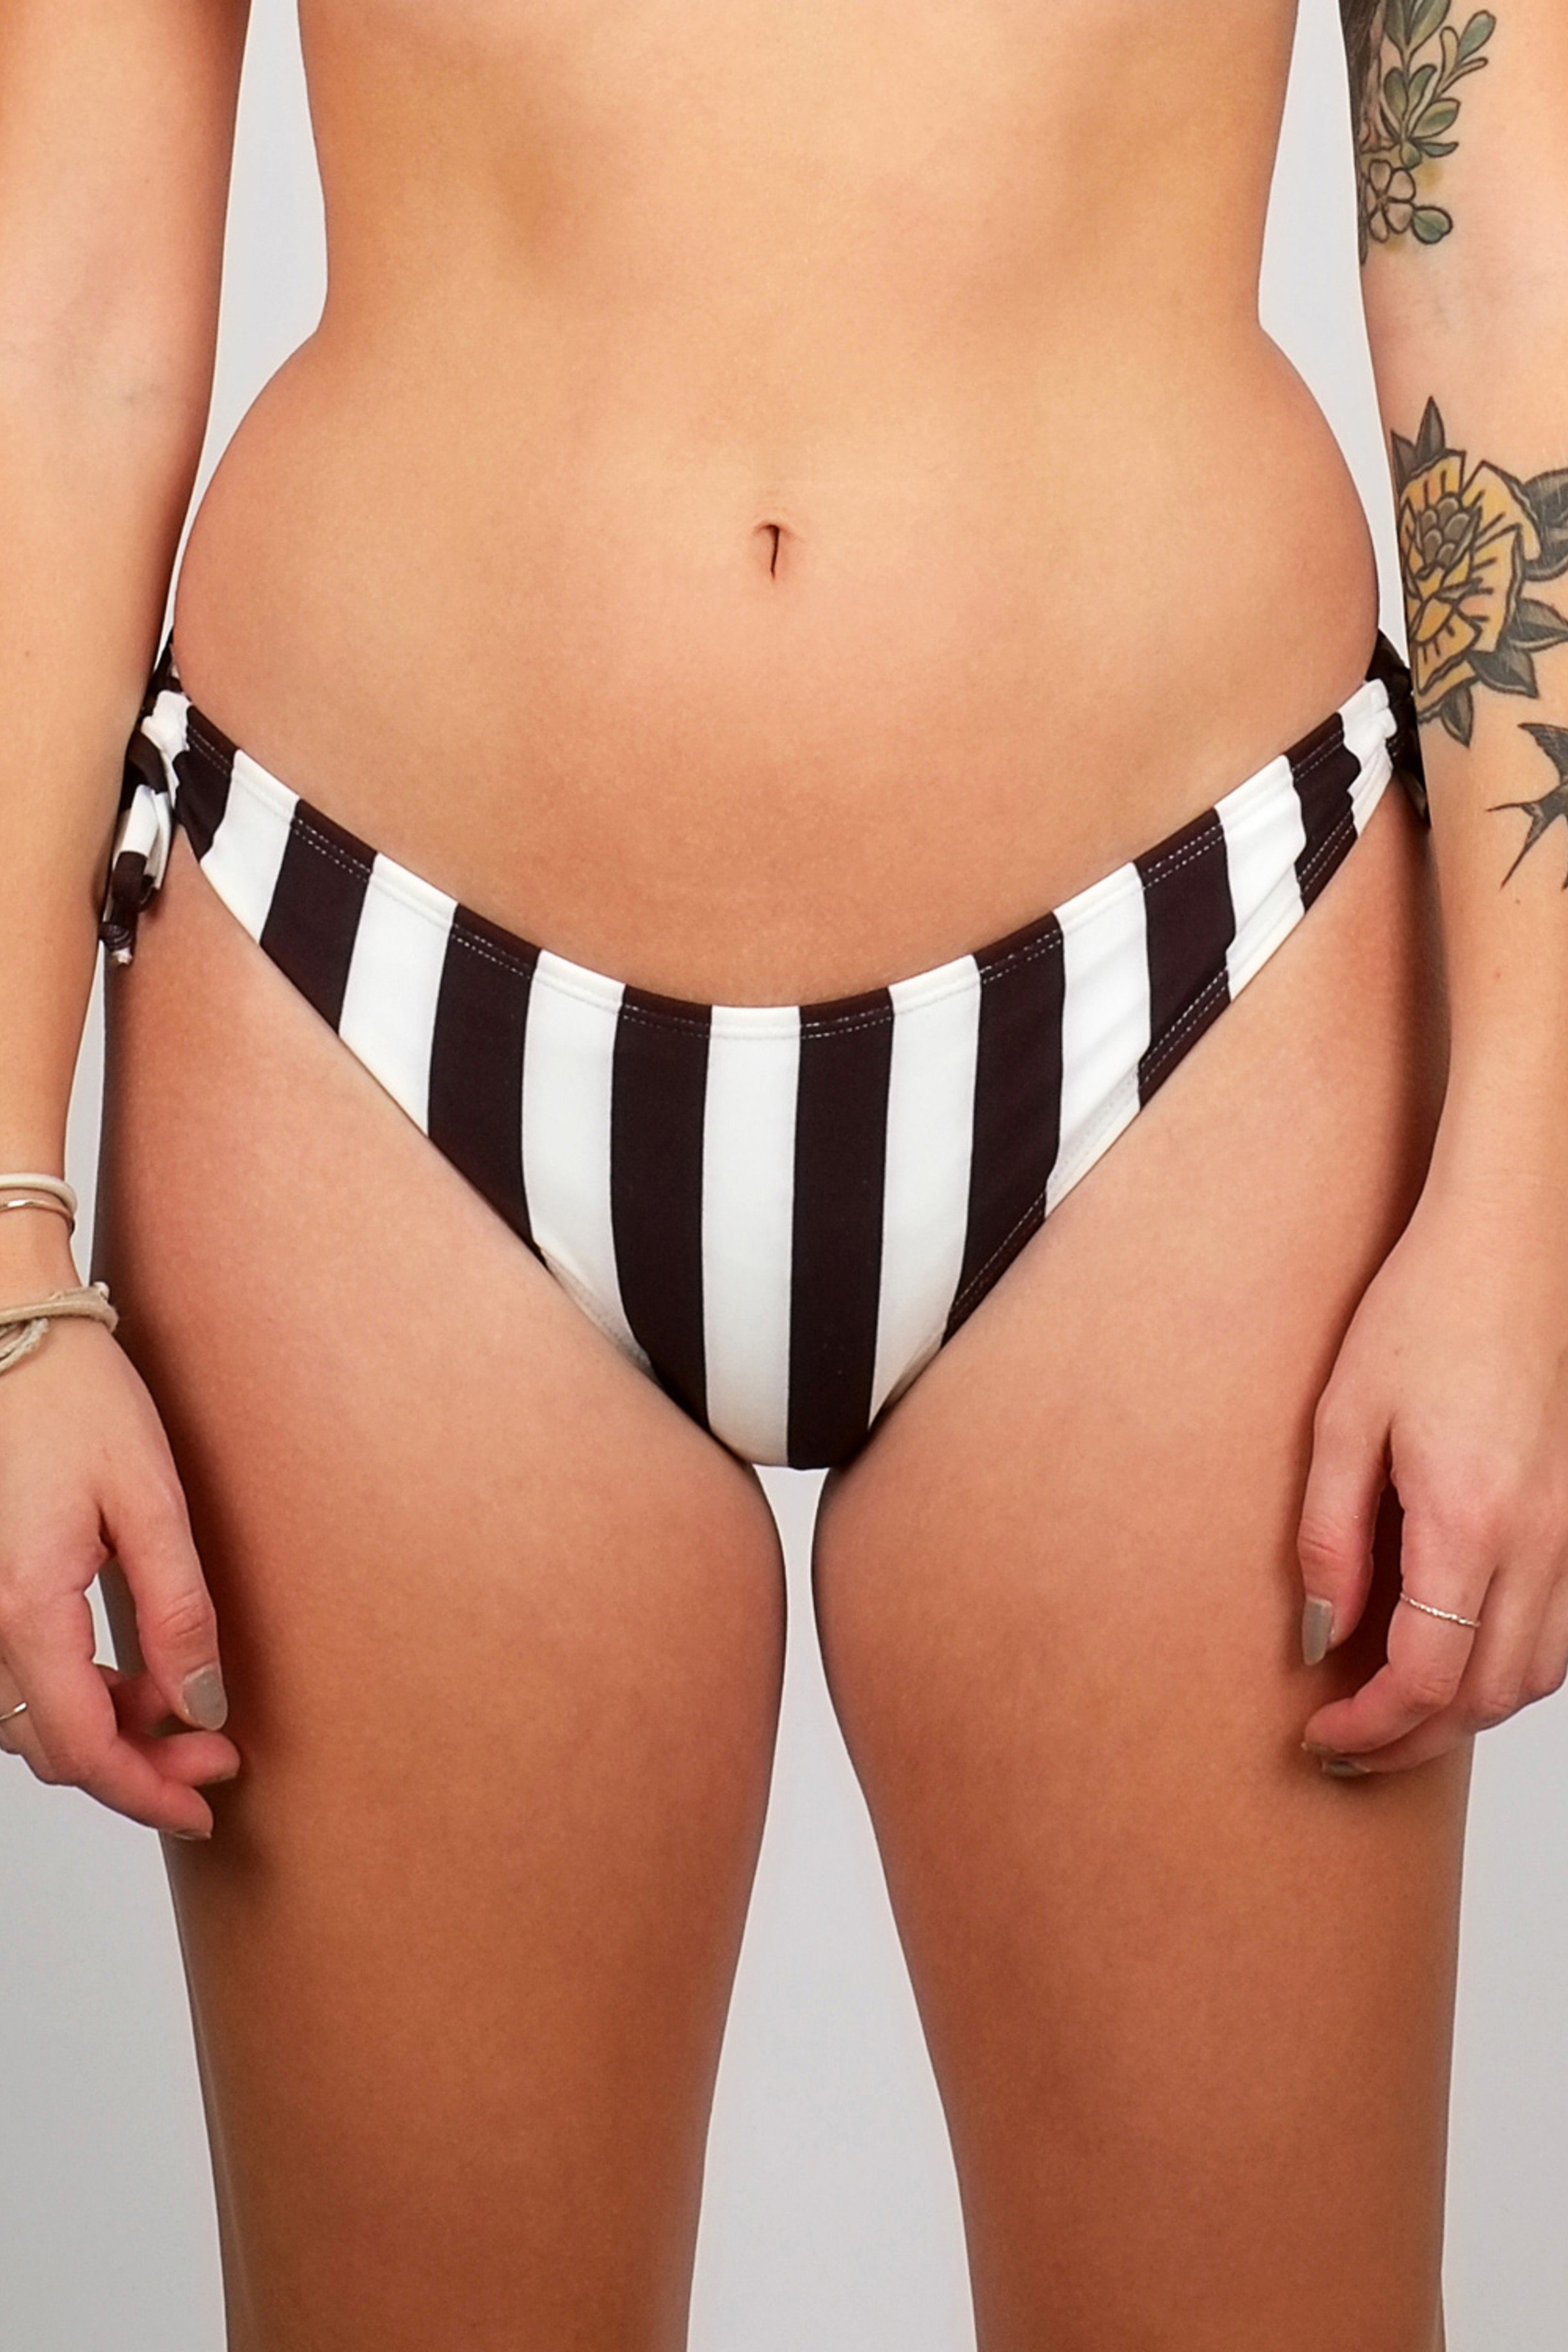 Bikini Bottom Odda Big Stripes Weiss from LOVECO